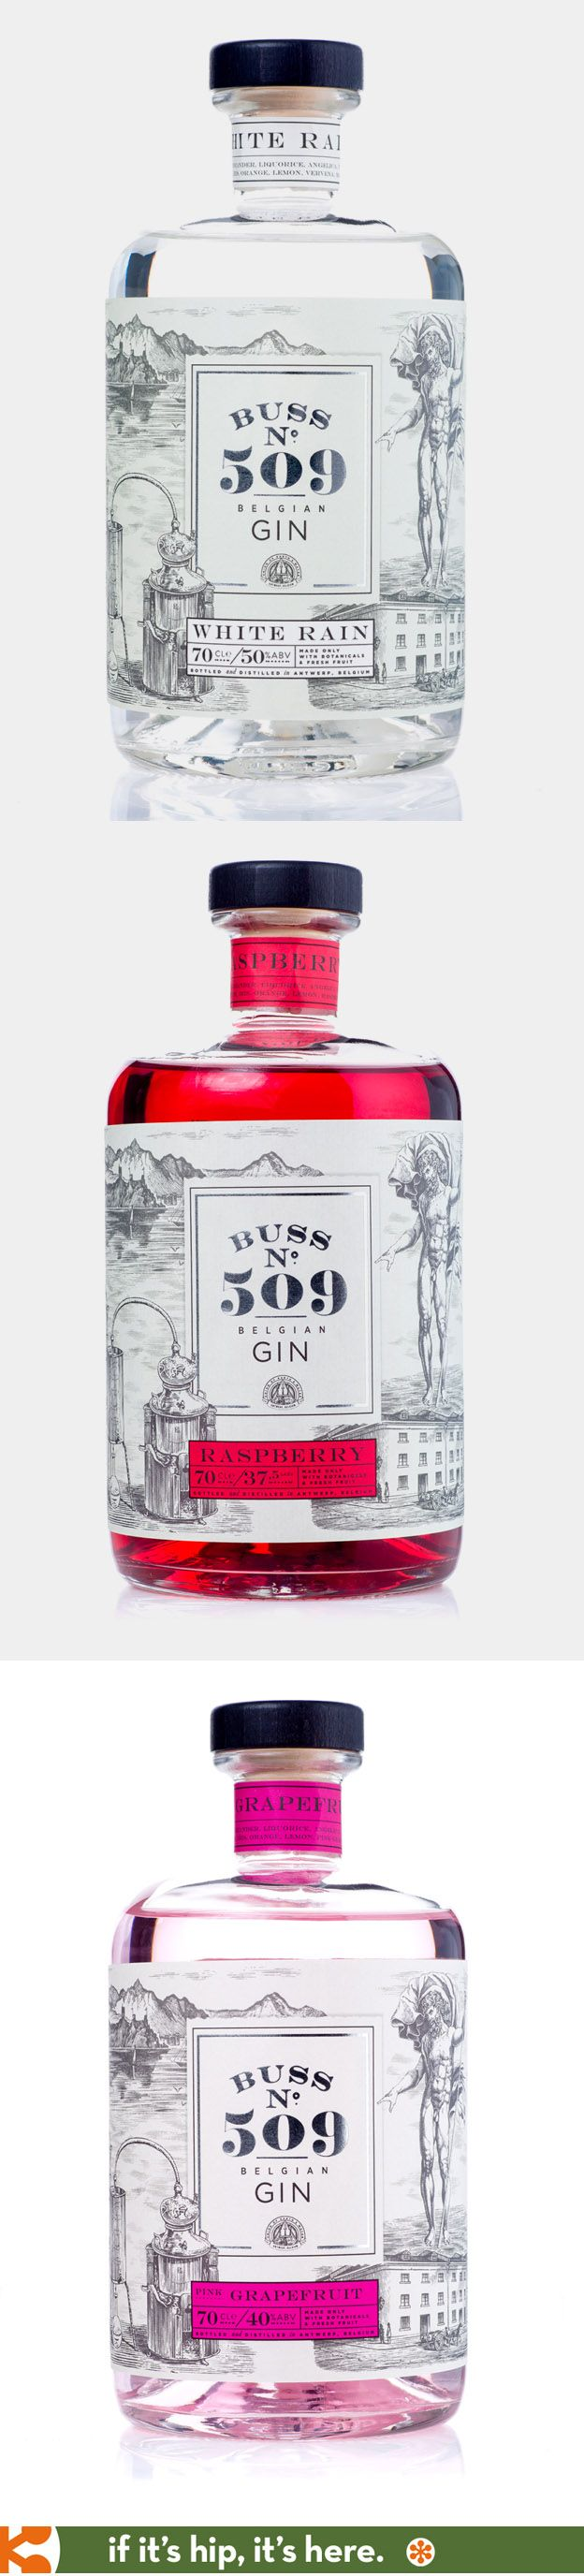 BUSS No.509 Author's Collection Gins from Belgium.